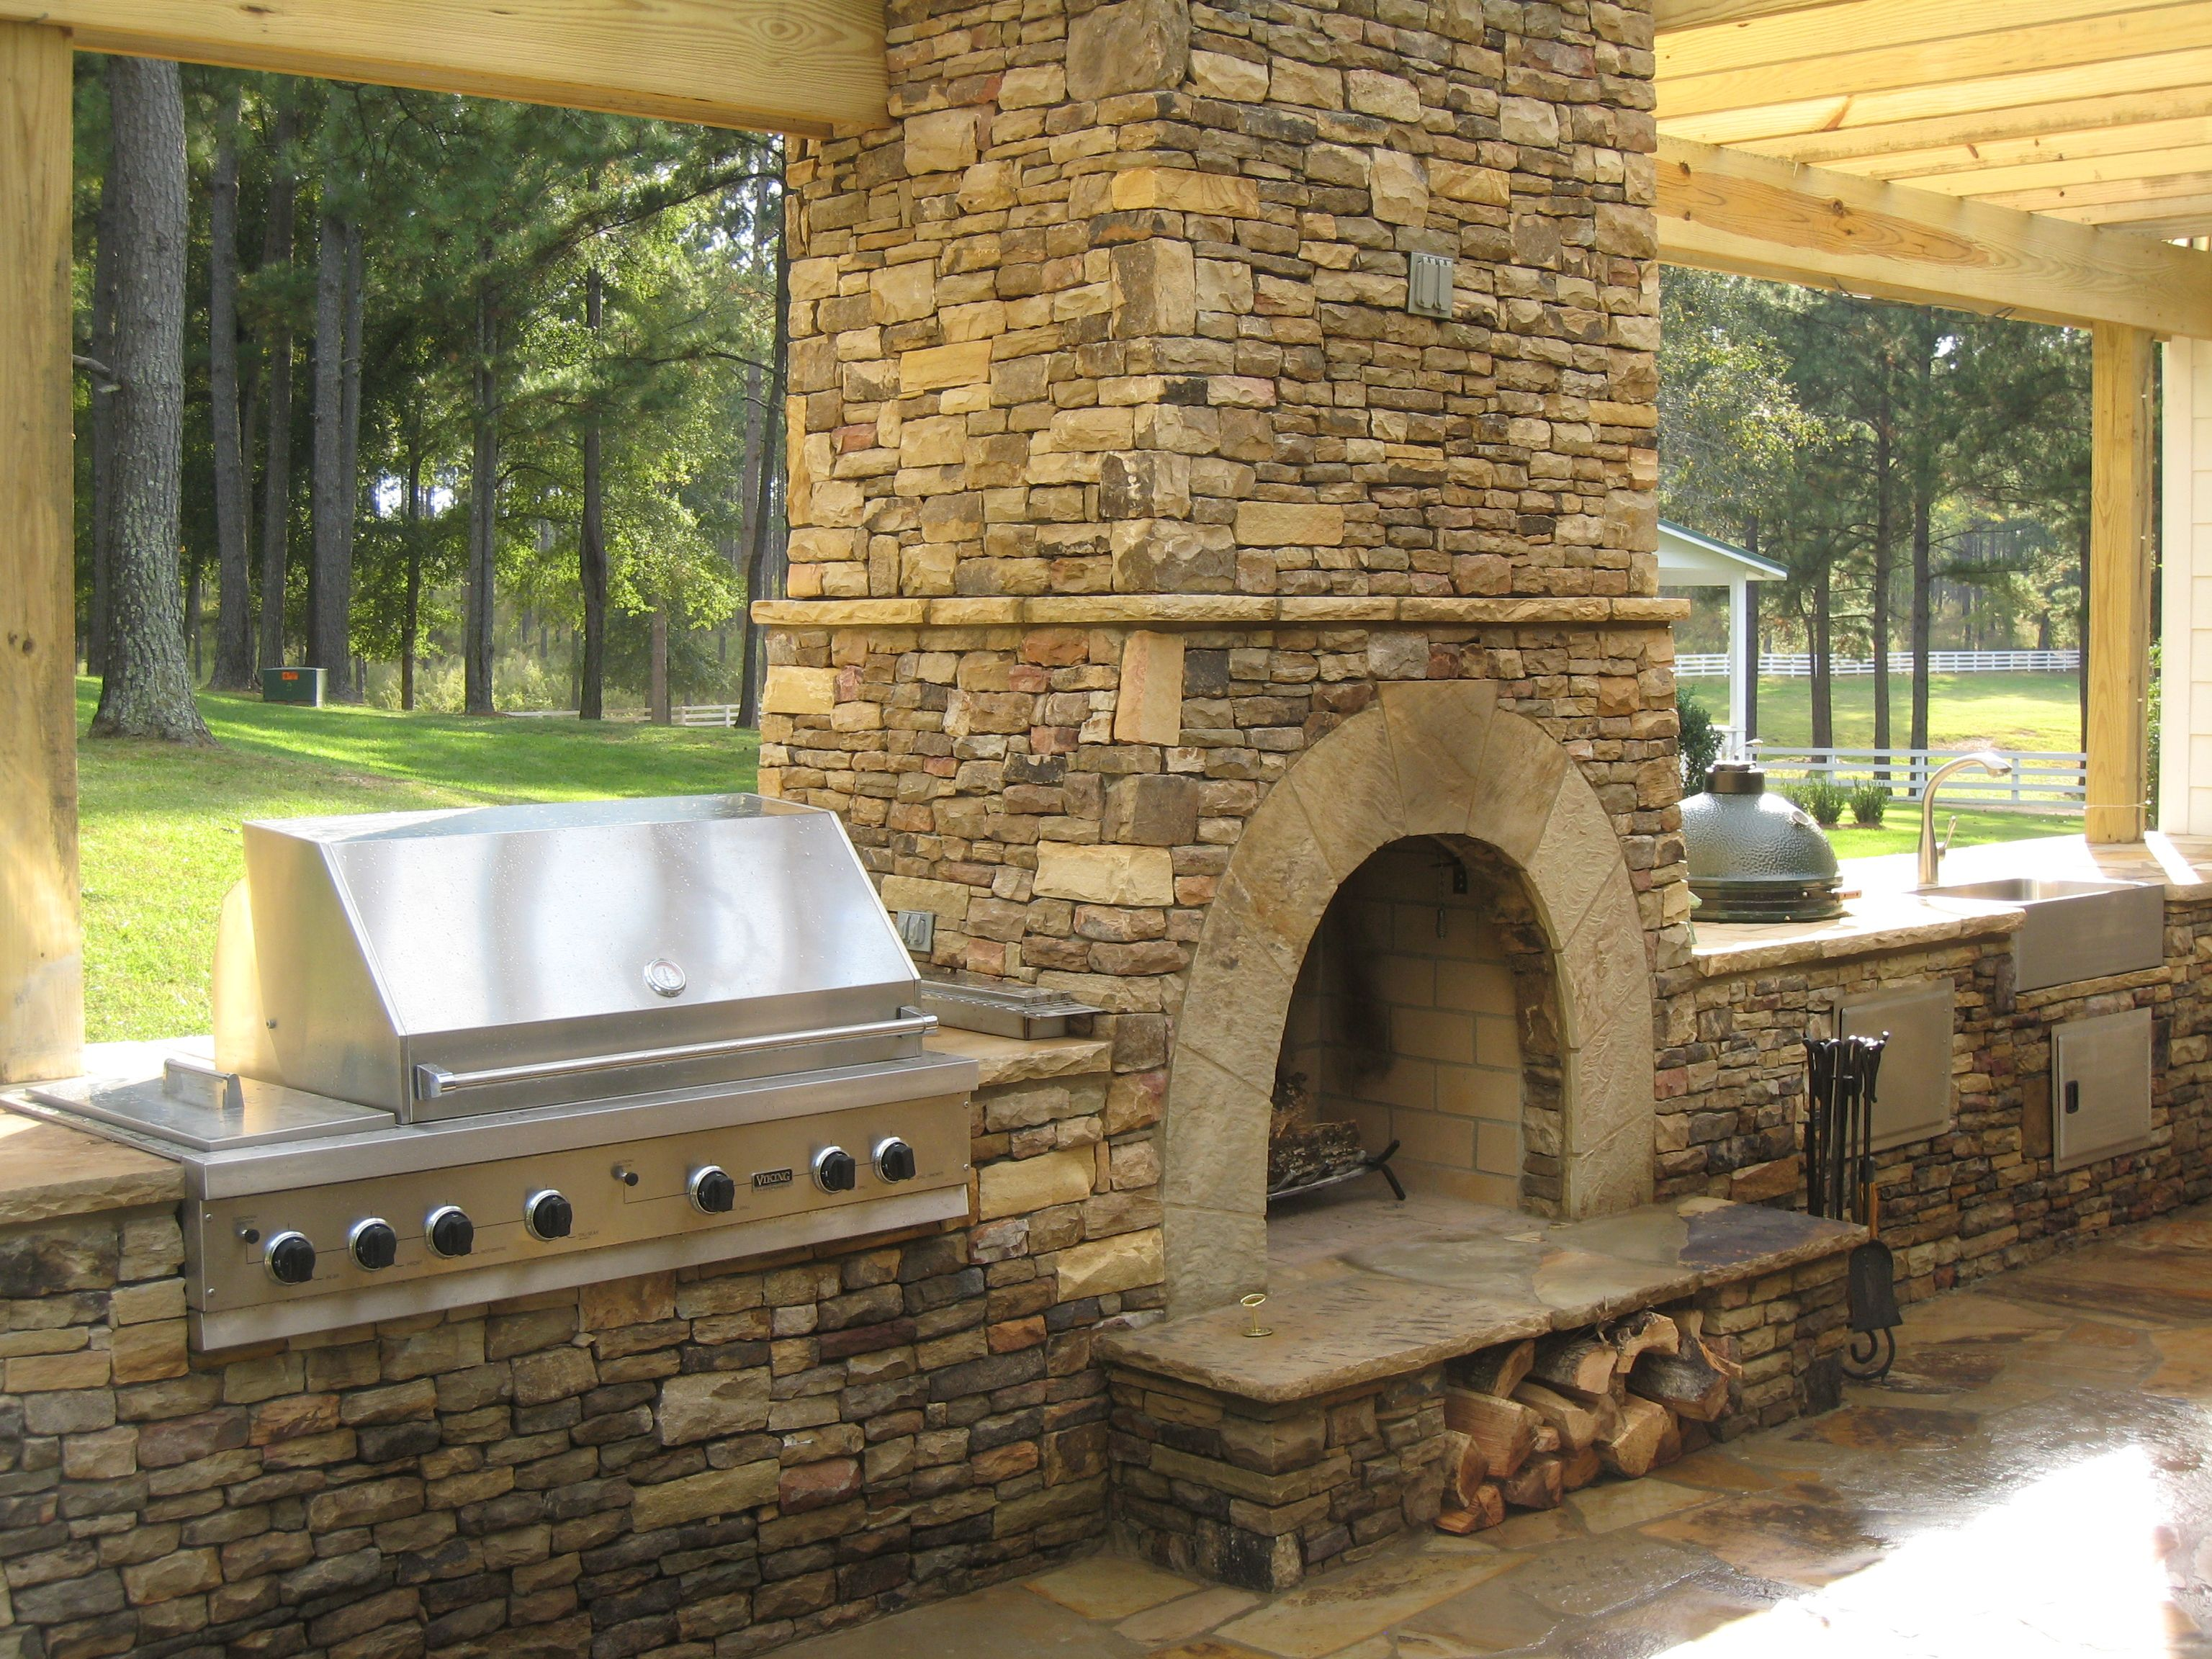 Amazing Outdoor Fireplace Designs Part 1 Patio grill Grilling